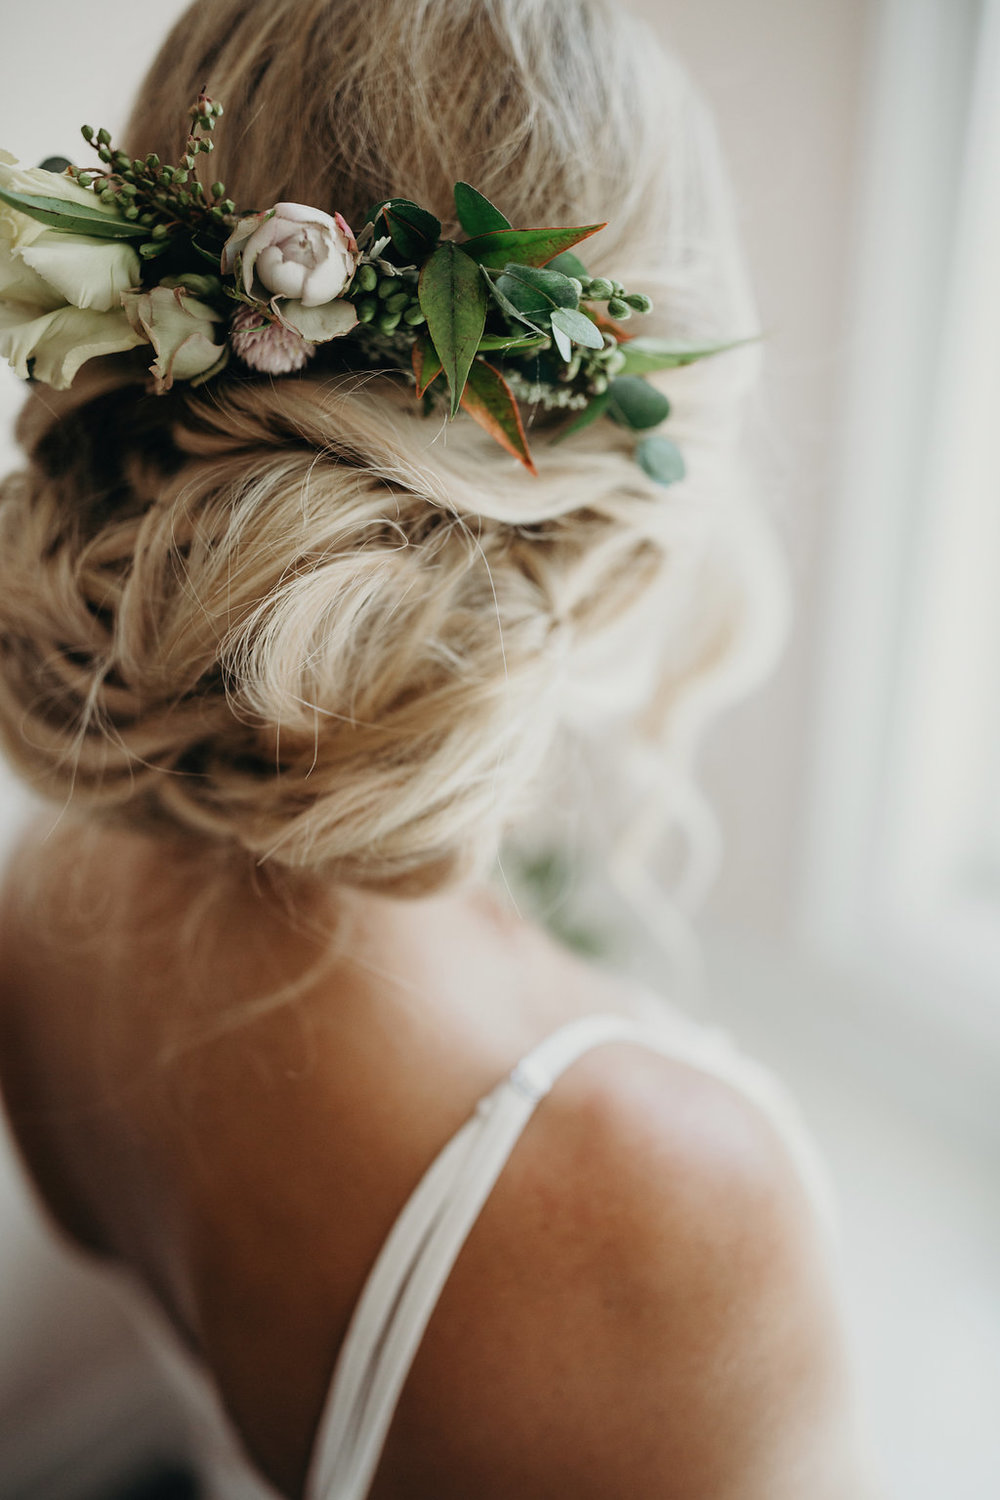 This hairpiece is so unique, it is not too large or overwhelming, but the perfect detail to this low bun.